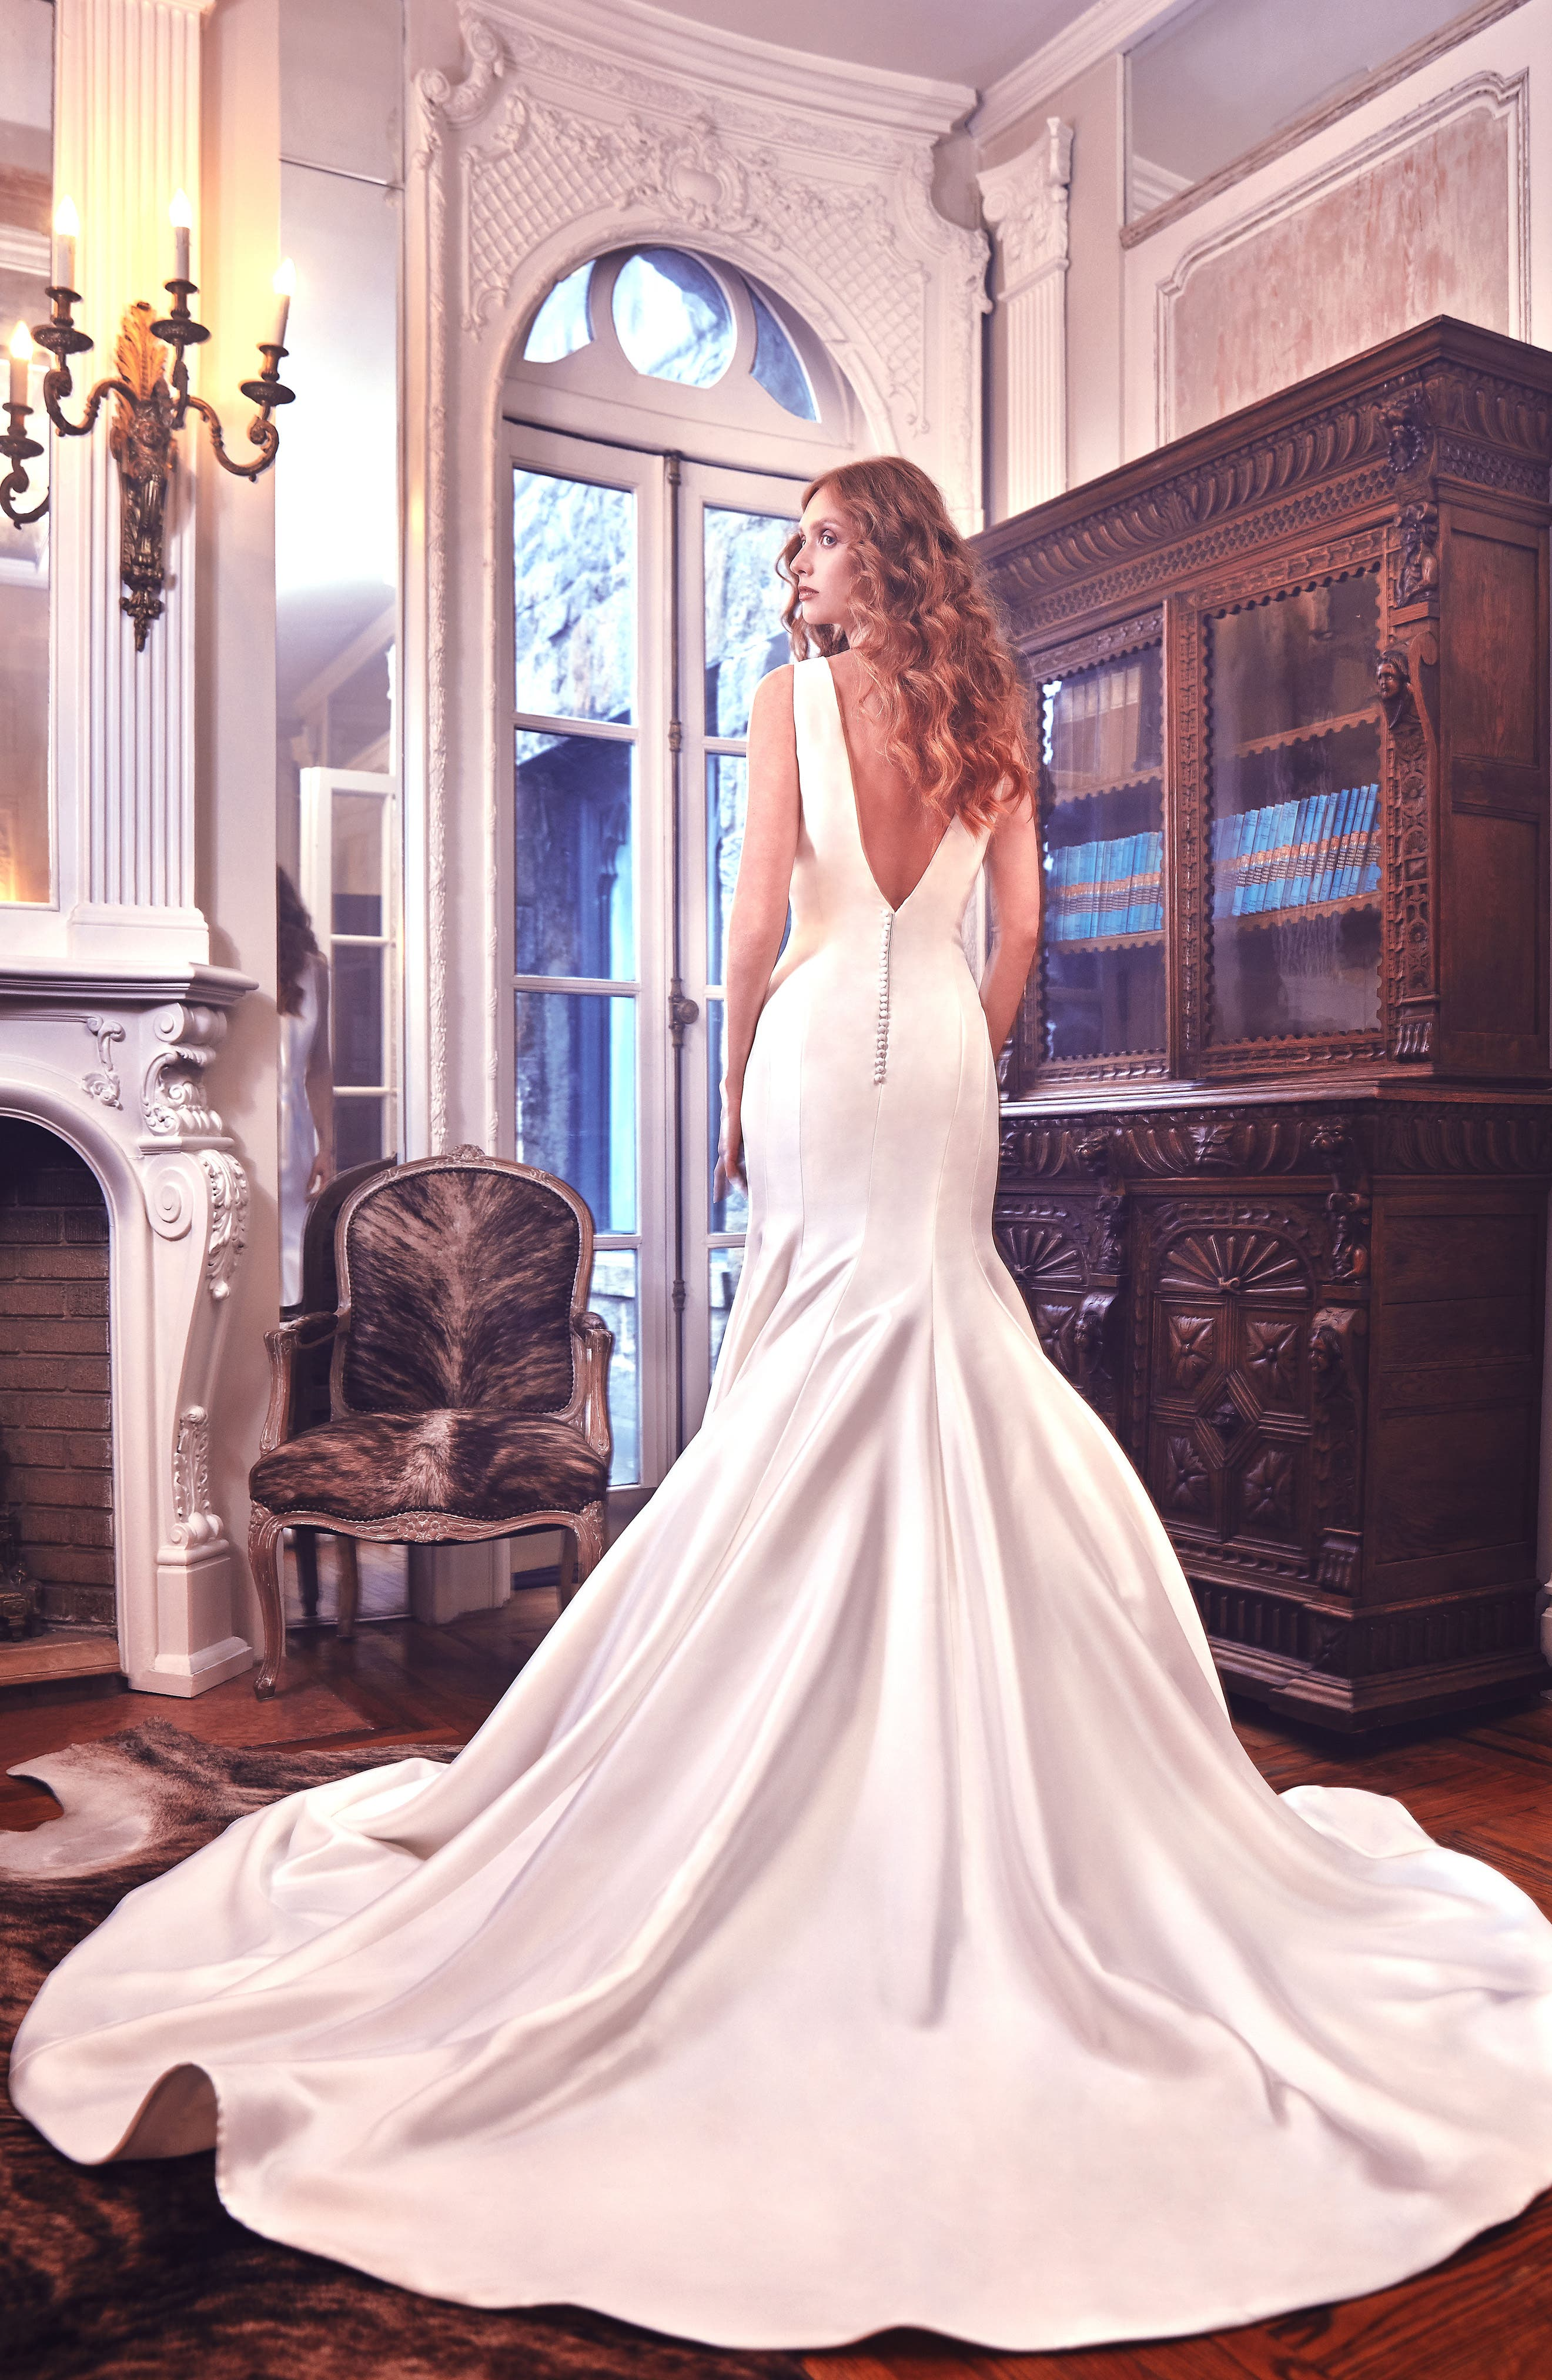 Mercer Shantung Trumpet Gown,                             Alternate thumbnail 2, color,                             Ivory